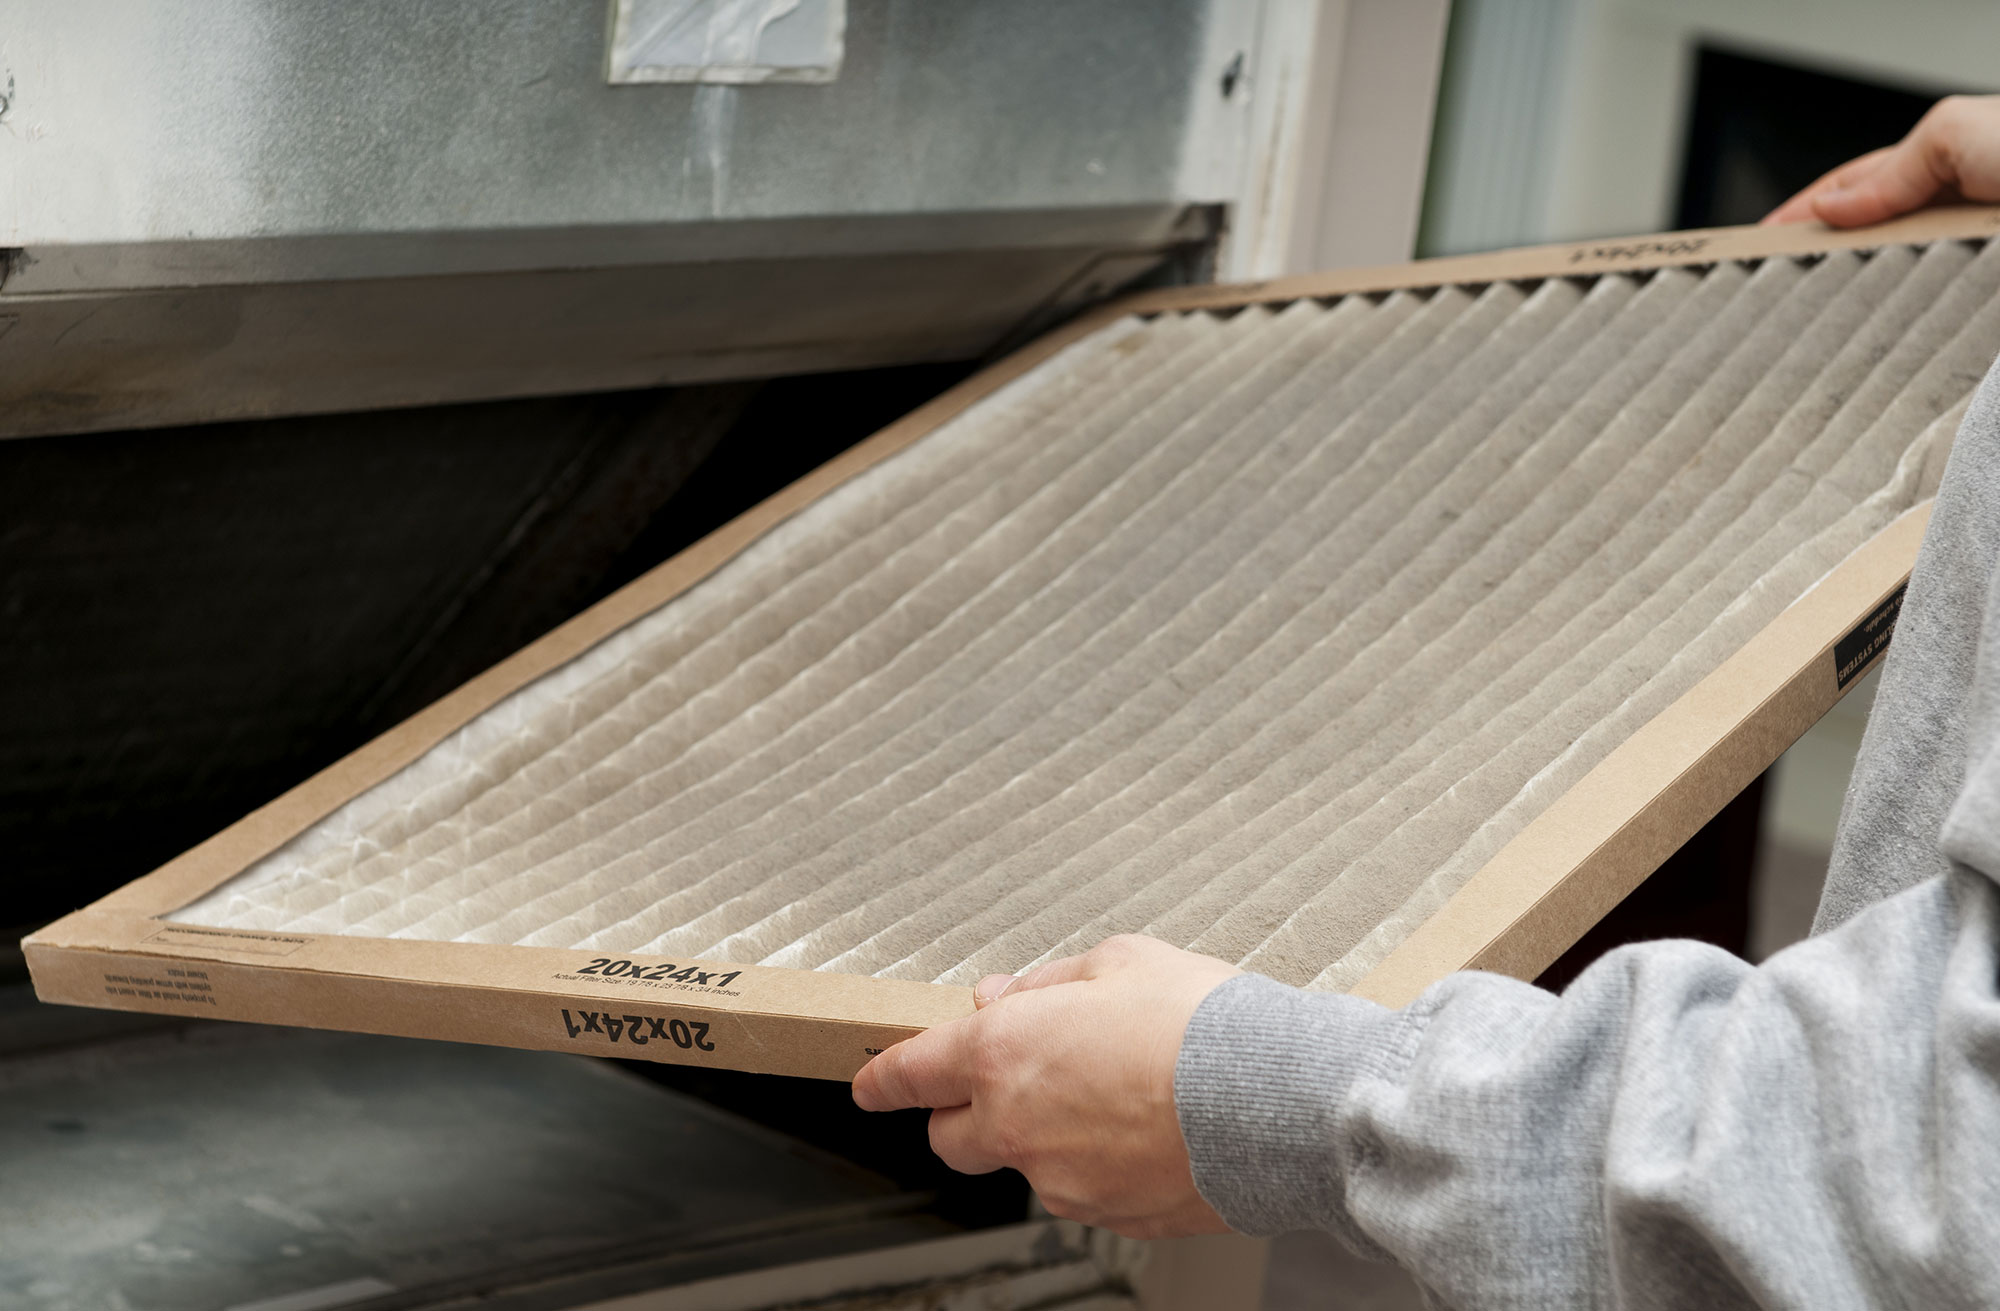 Take the air filter out of the air handler